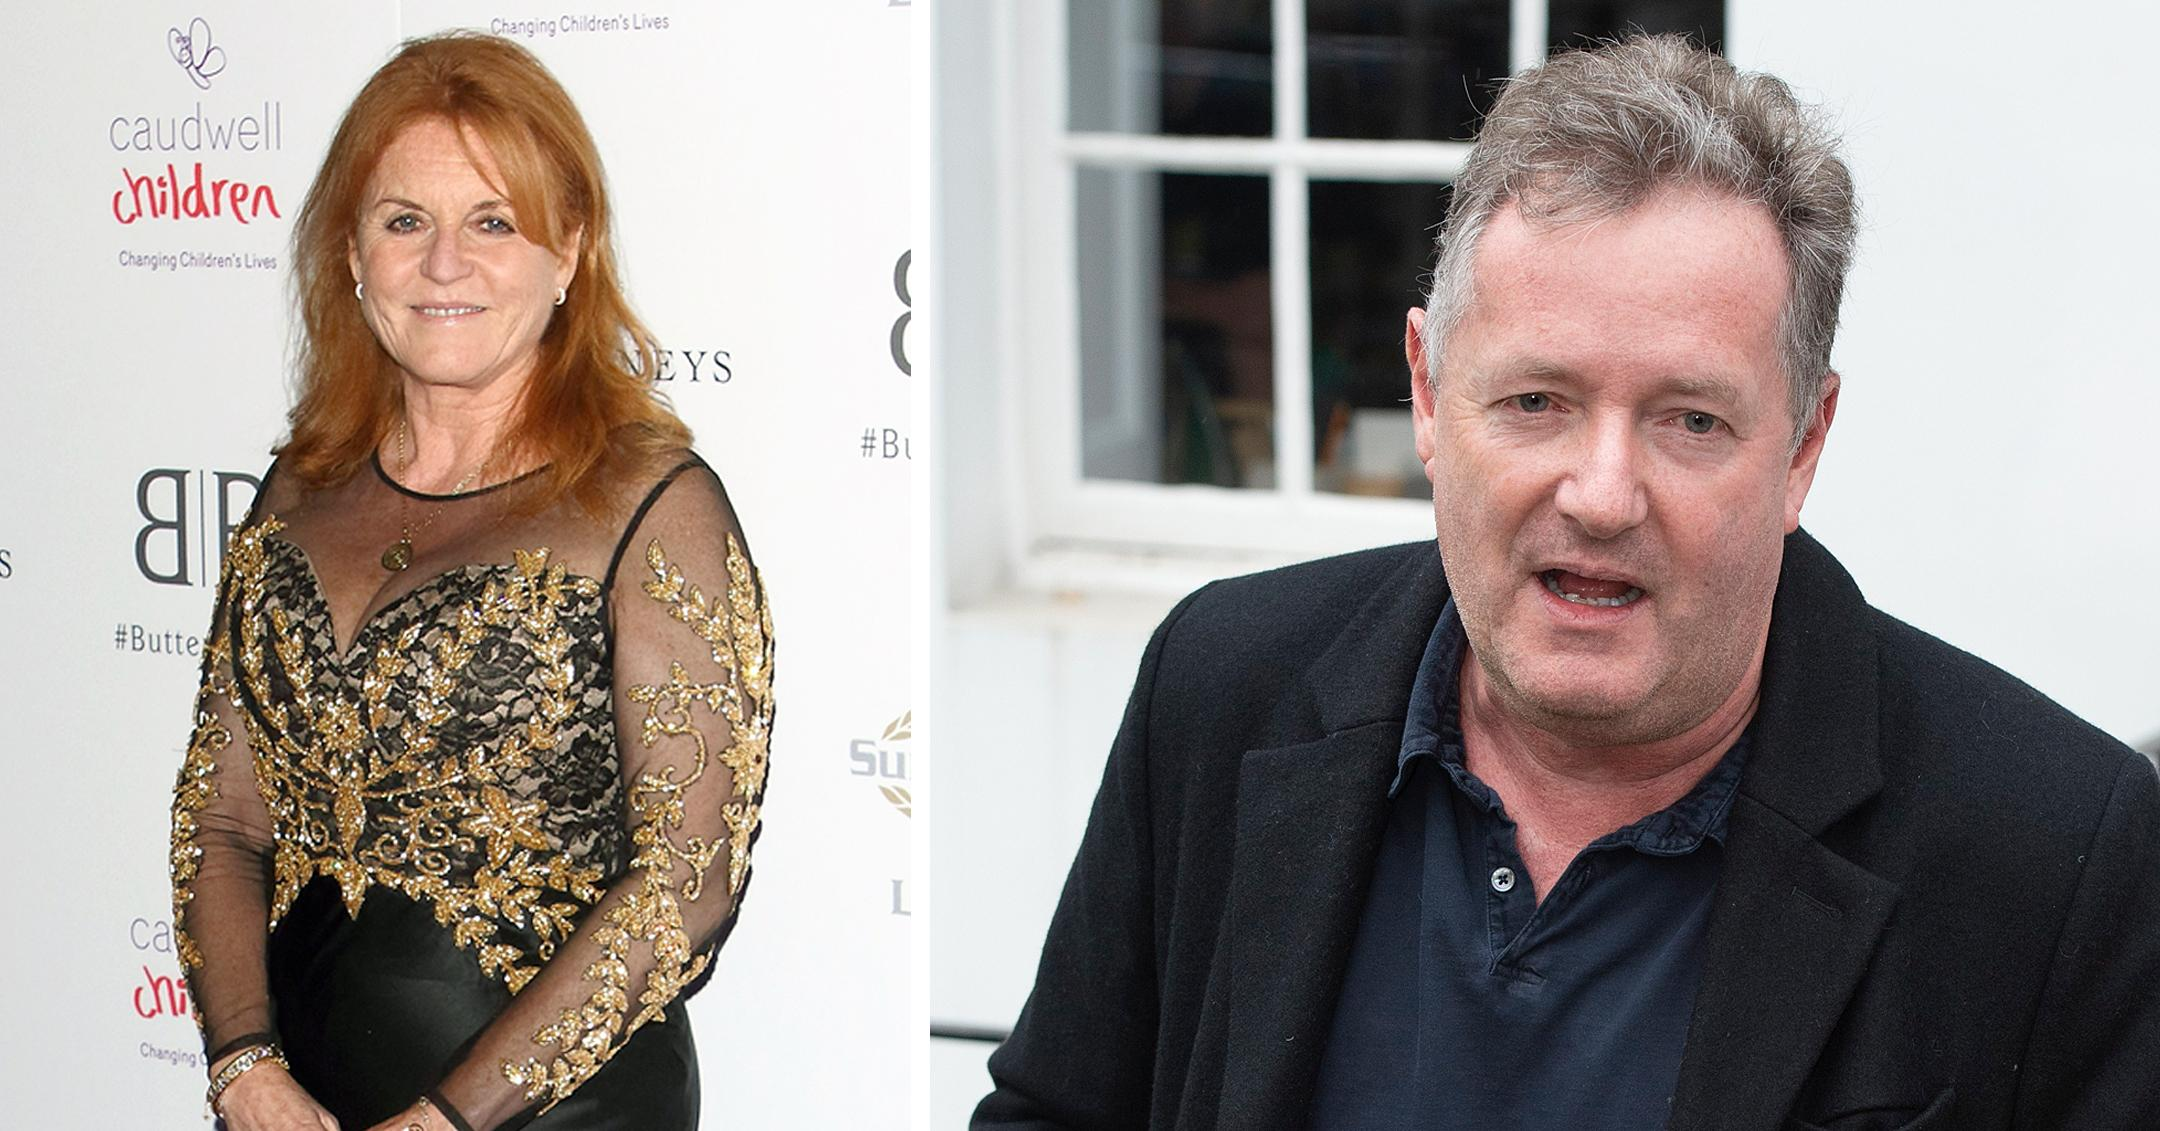 piers morgan claims sarah ferguson texted him after he quit good morning britain